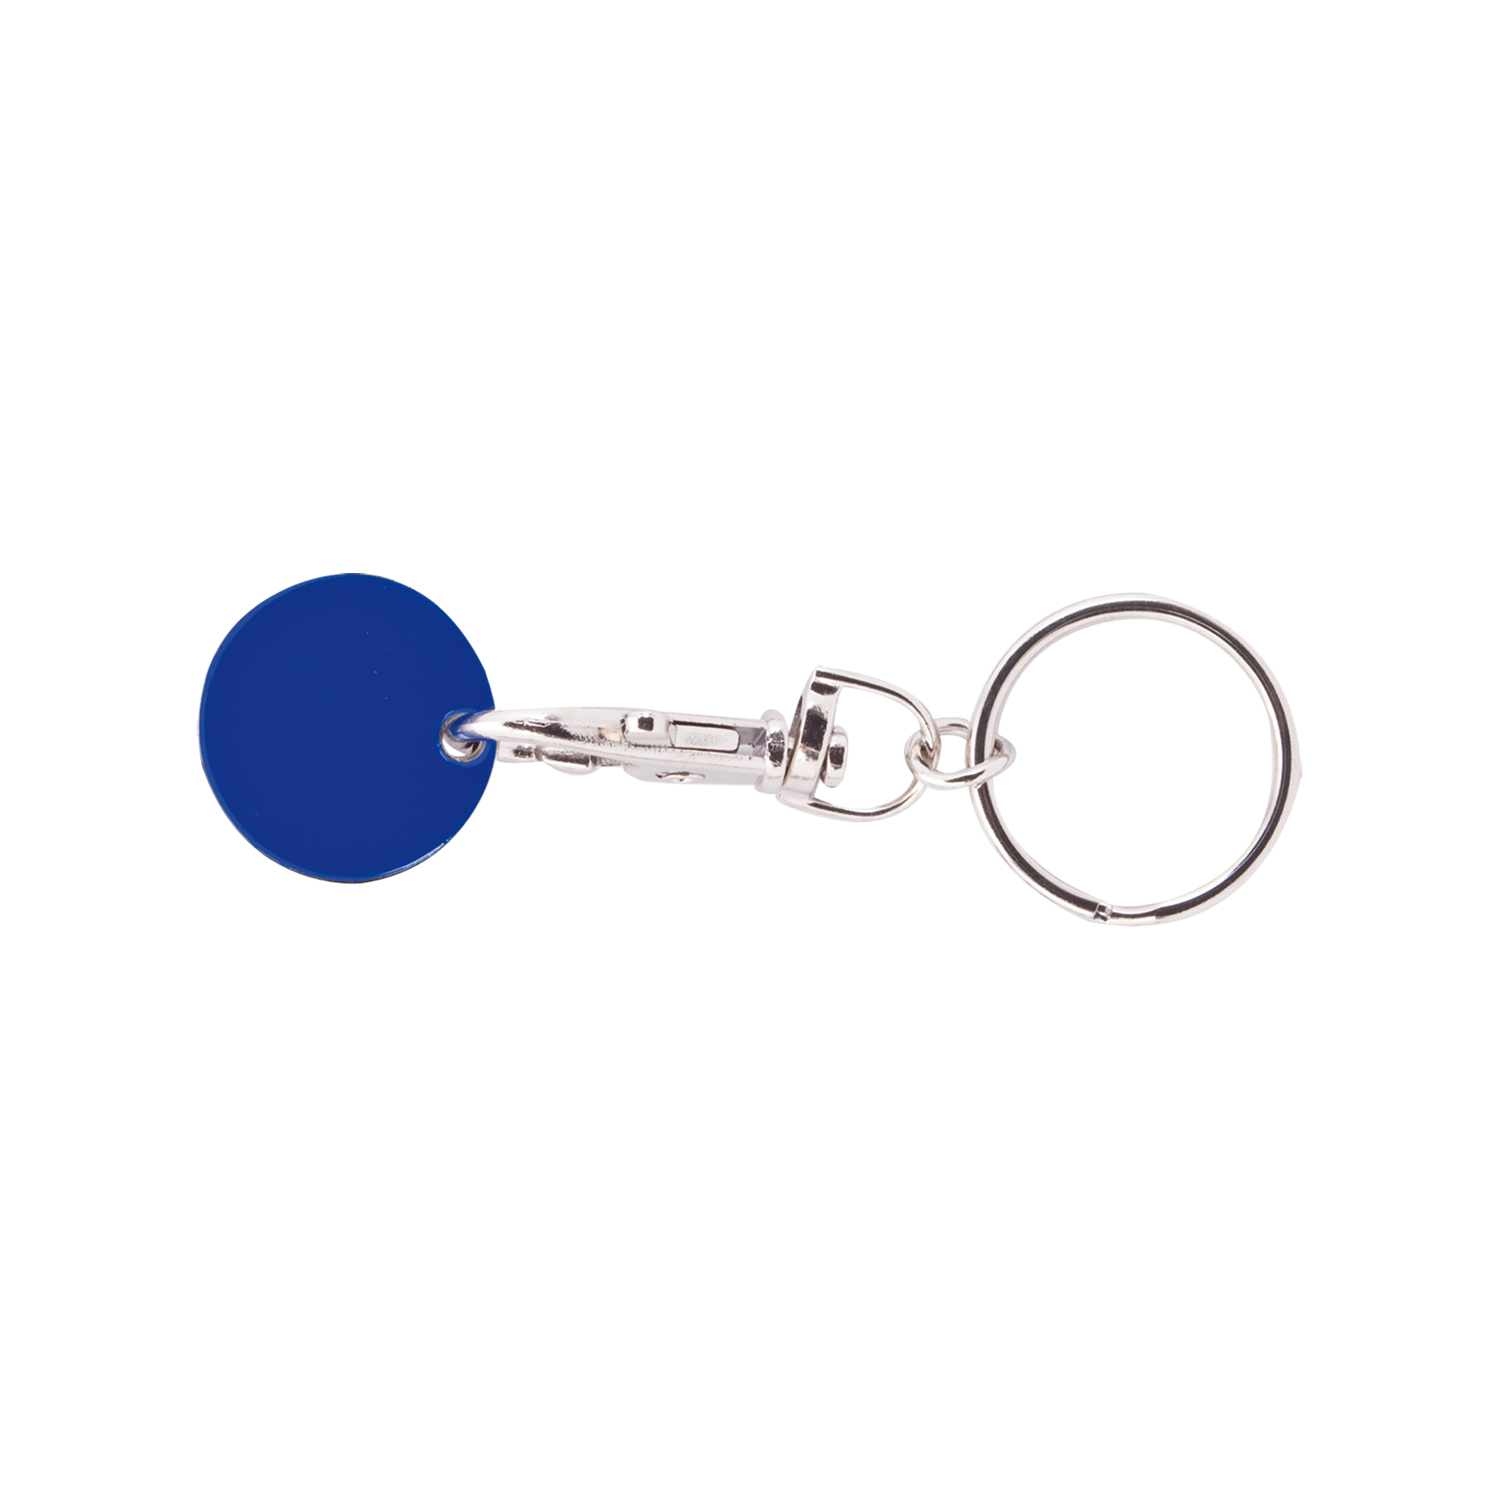 Keychain 059 (Shopping trolley coin keychain) - hmi47059-07 (Blue)